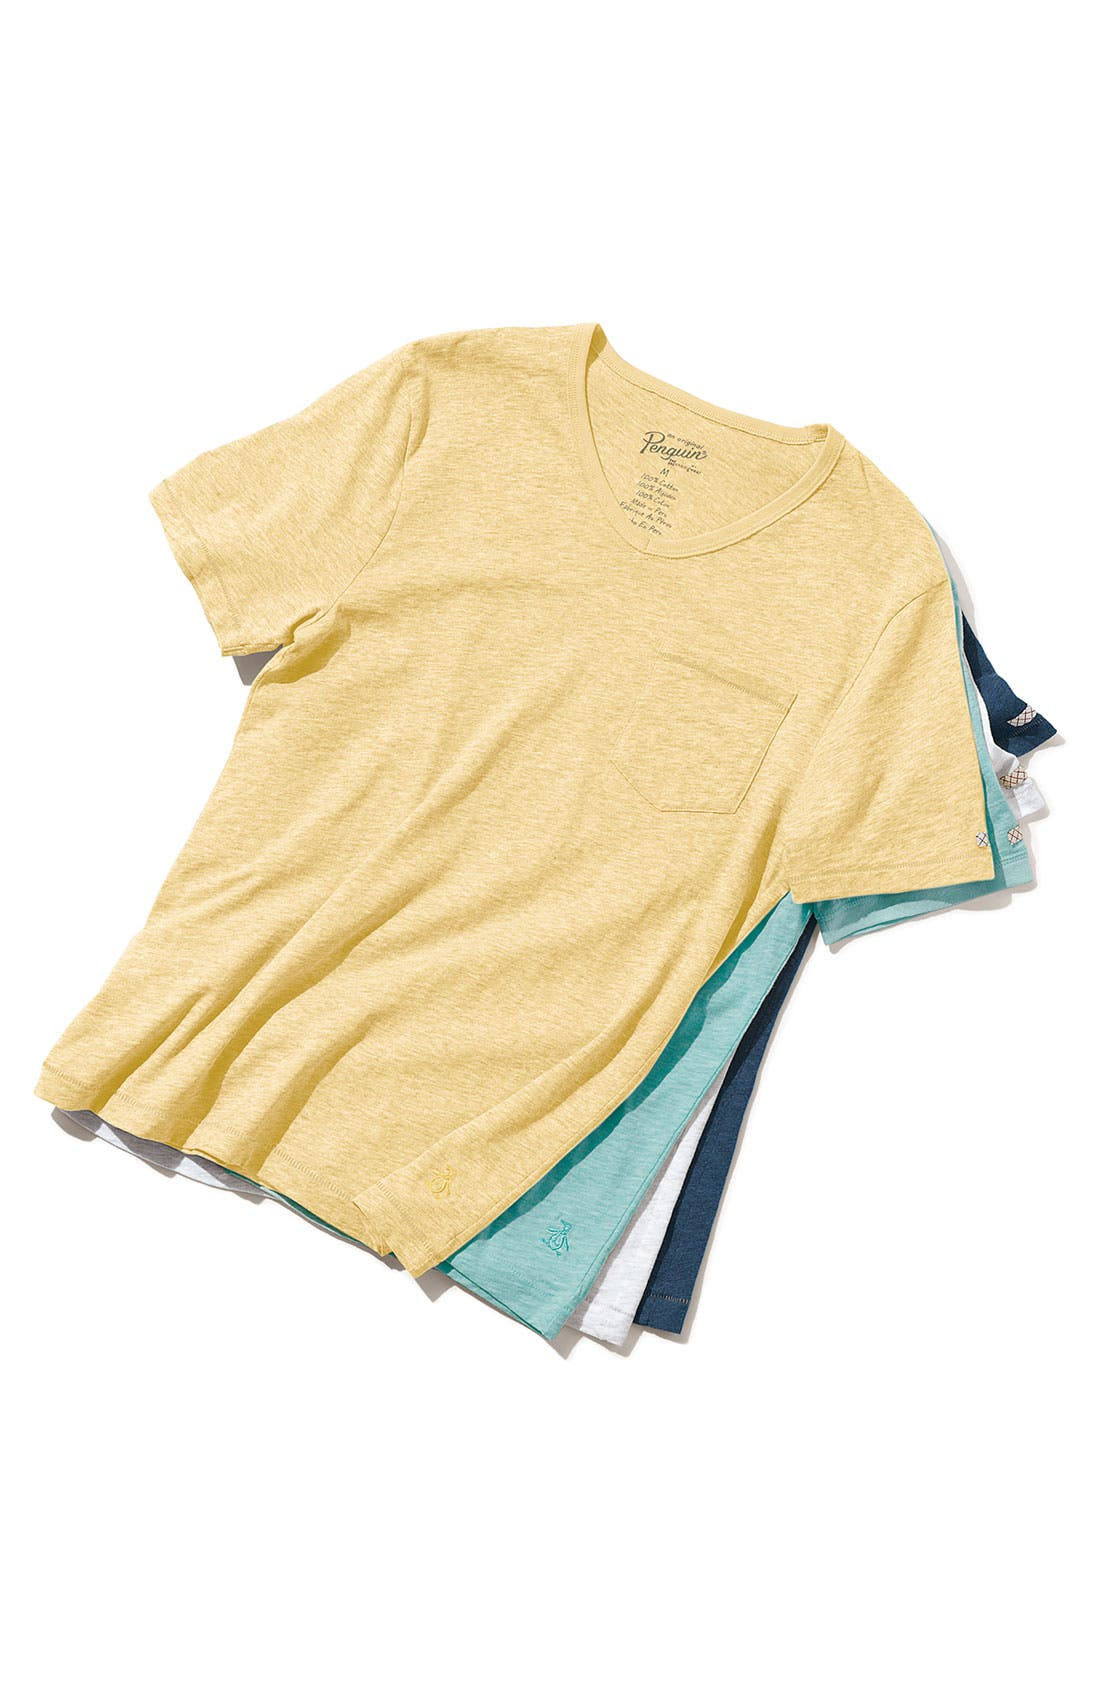 Alternate Image 3  - Original Penguin Trim Fit Heathered V-Neck T-Shirt